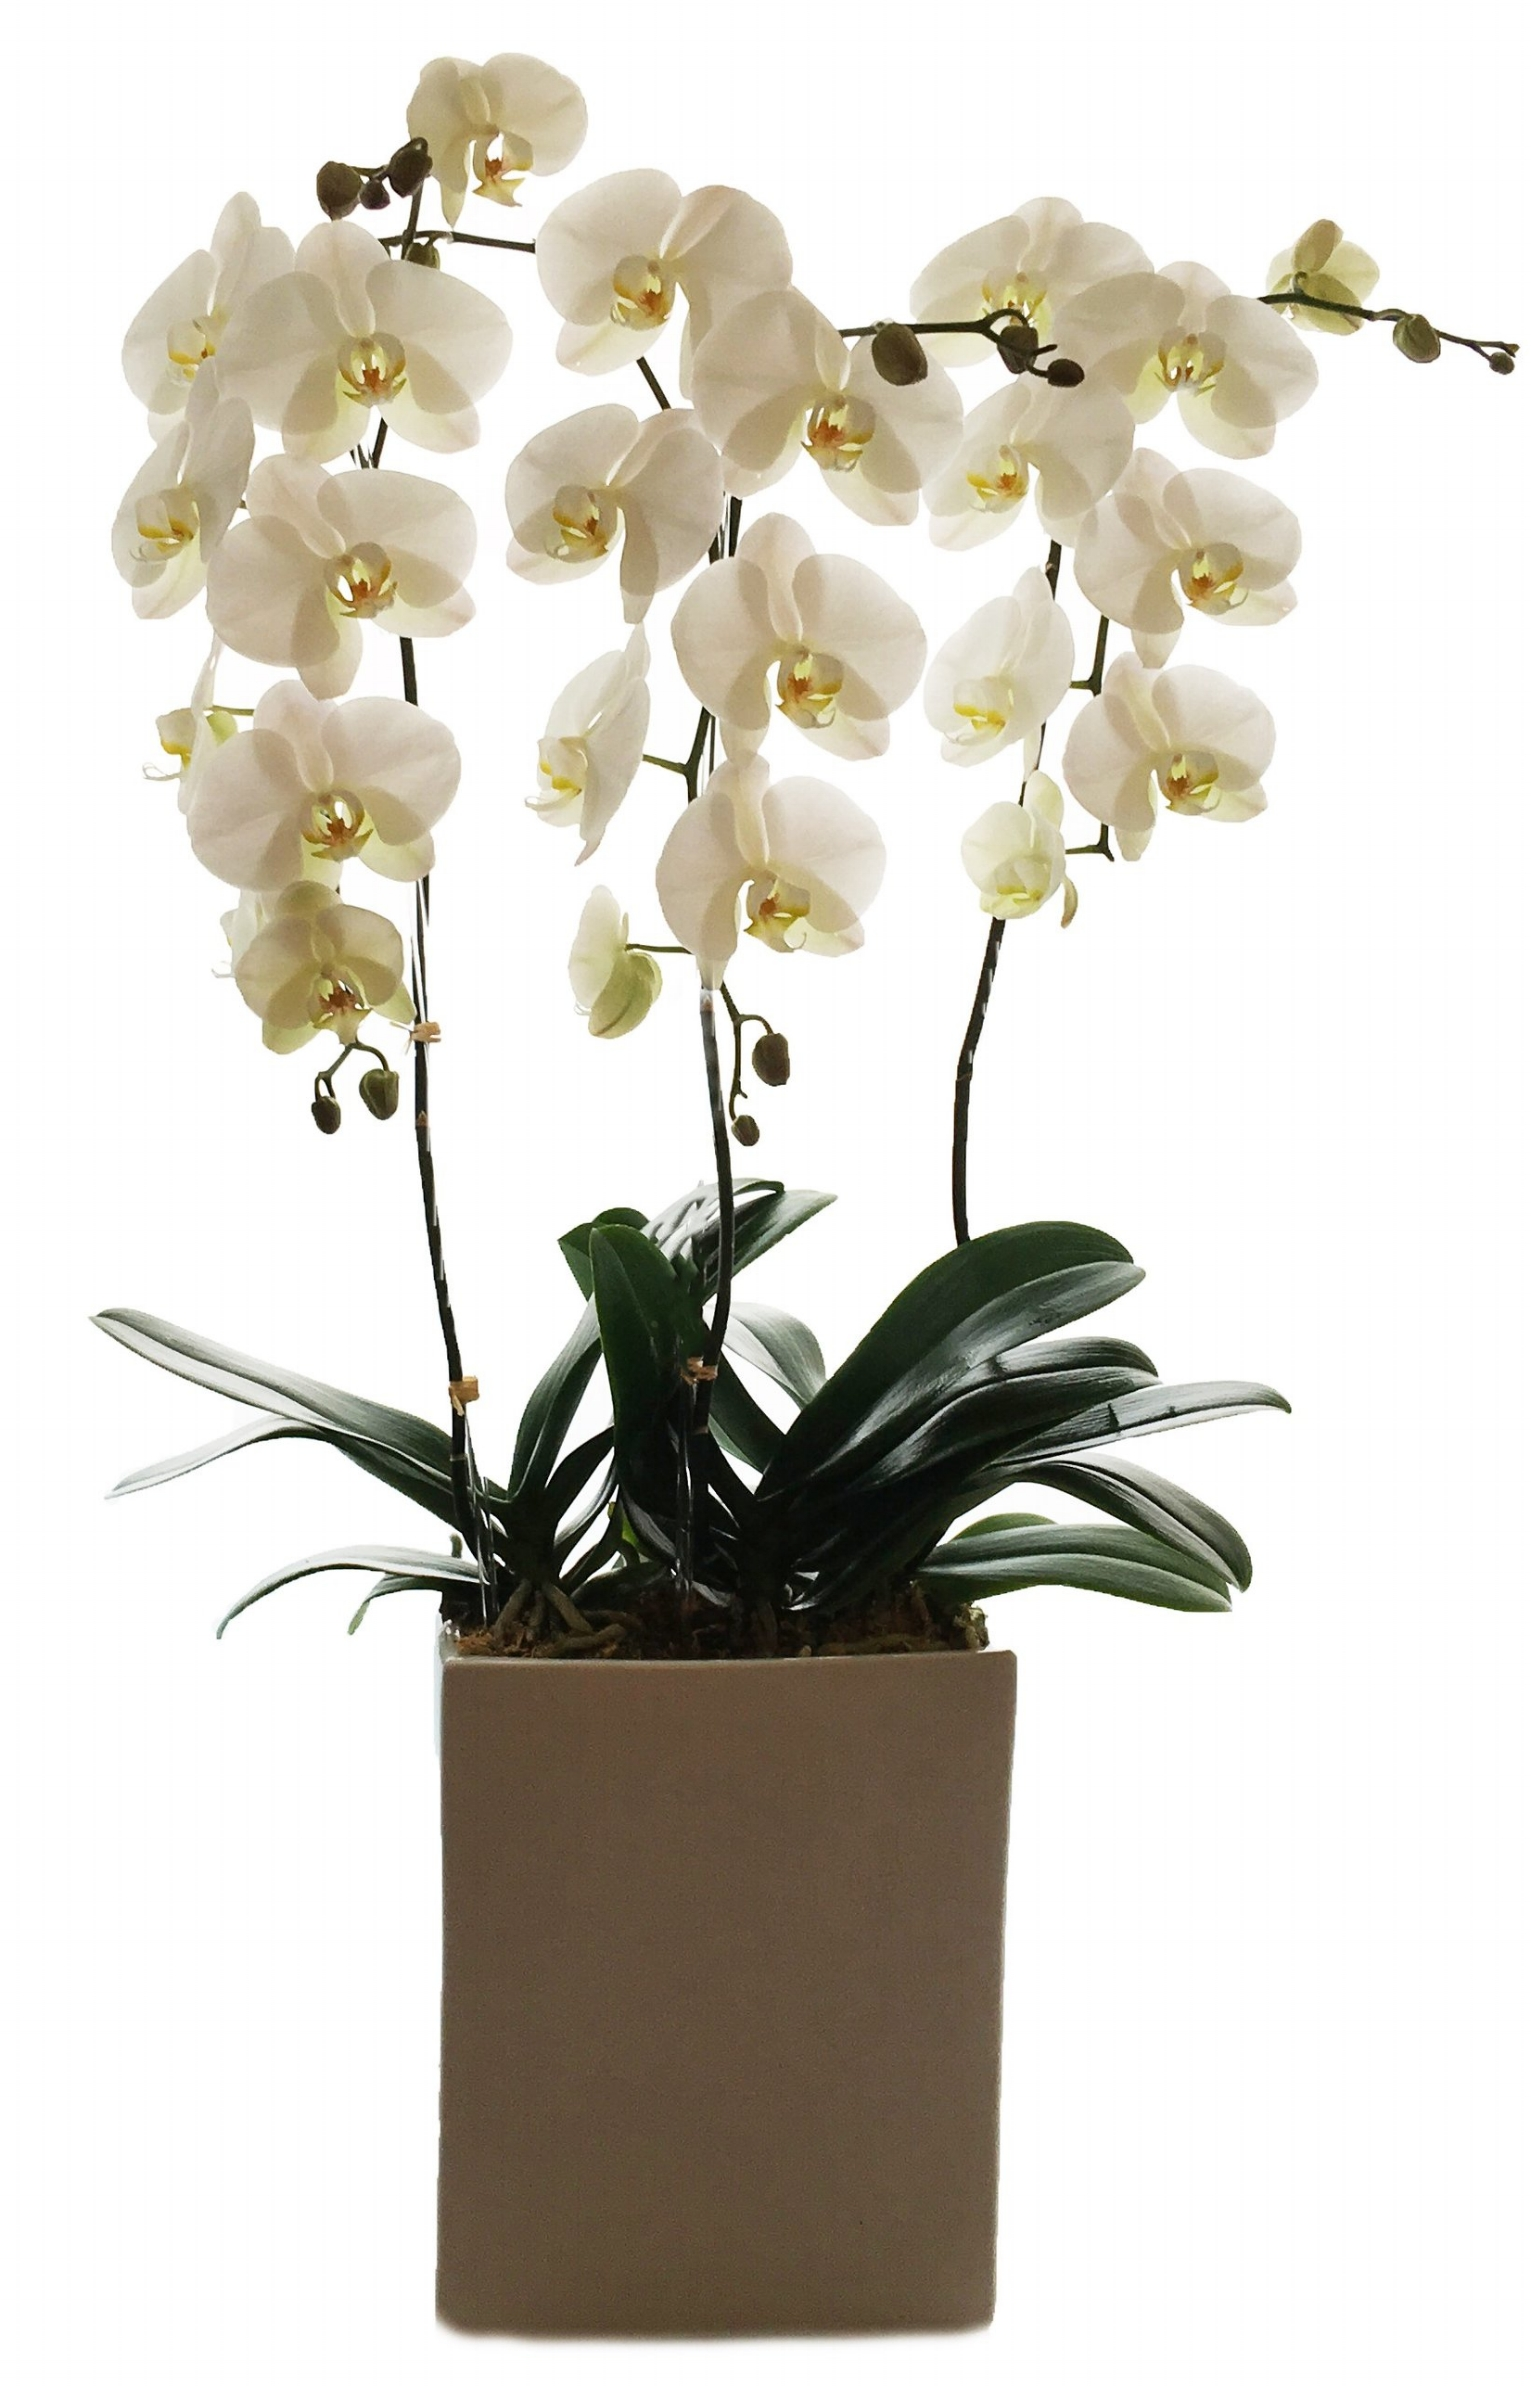 Orchid Plants start at $125